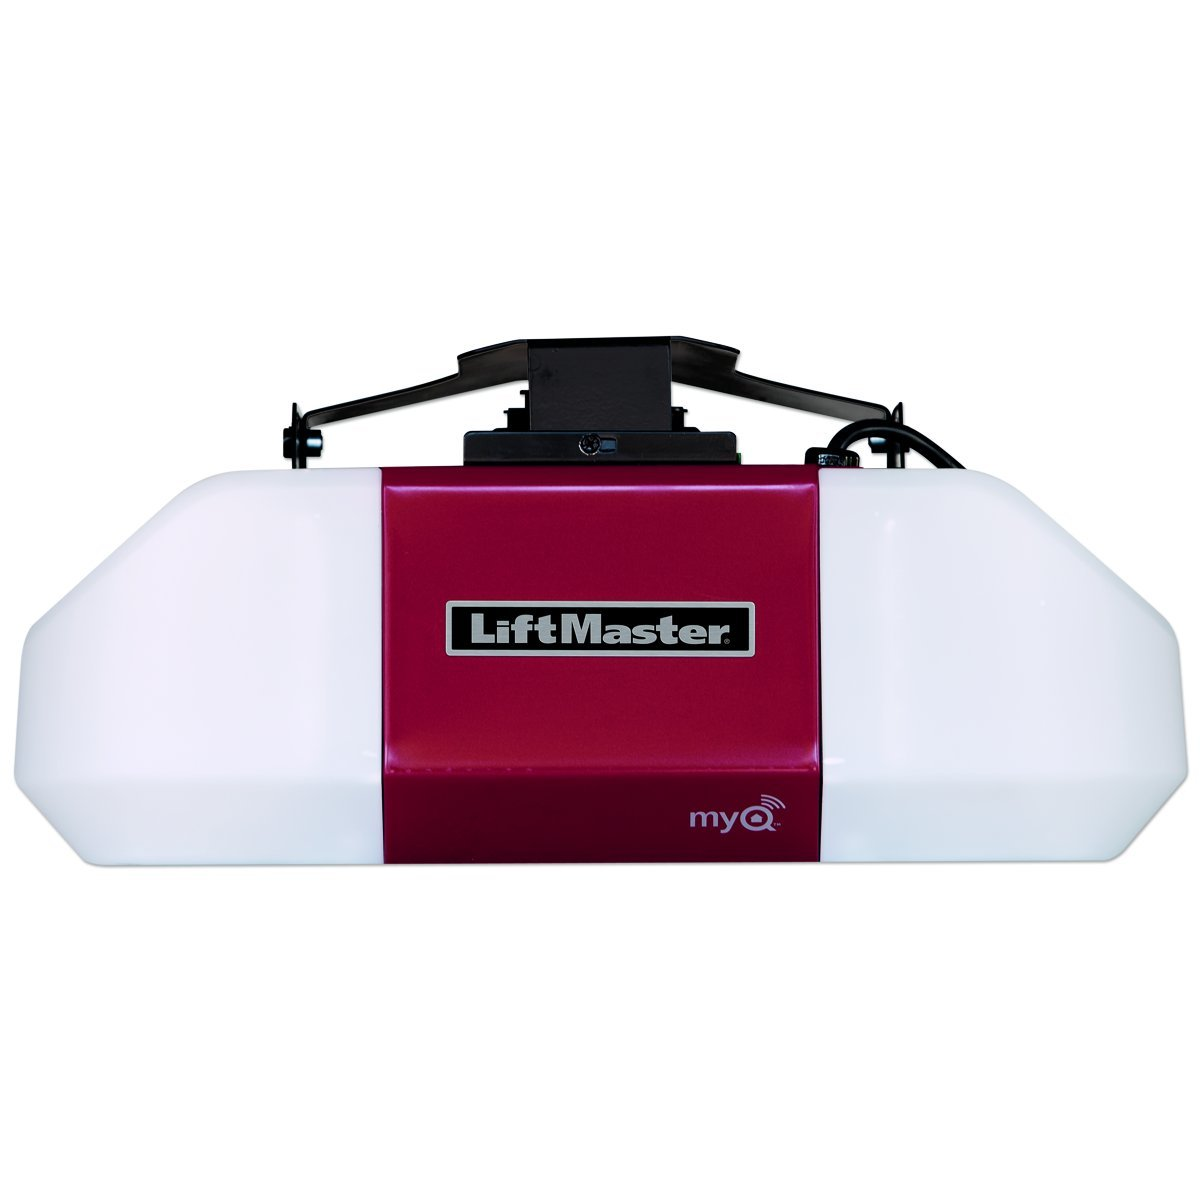 lift master garage door openerLiftmaster 8587 Elite Series  HP AC Chain Drive Garage Door